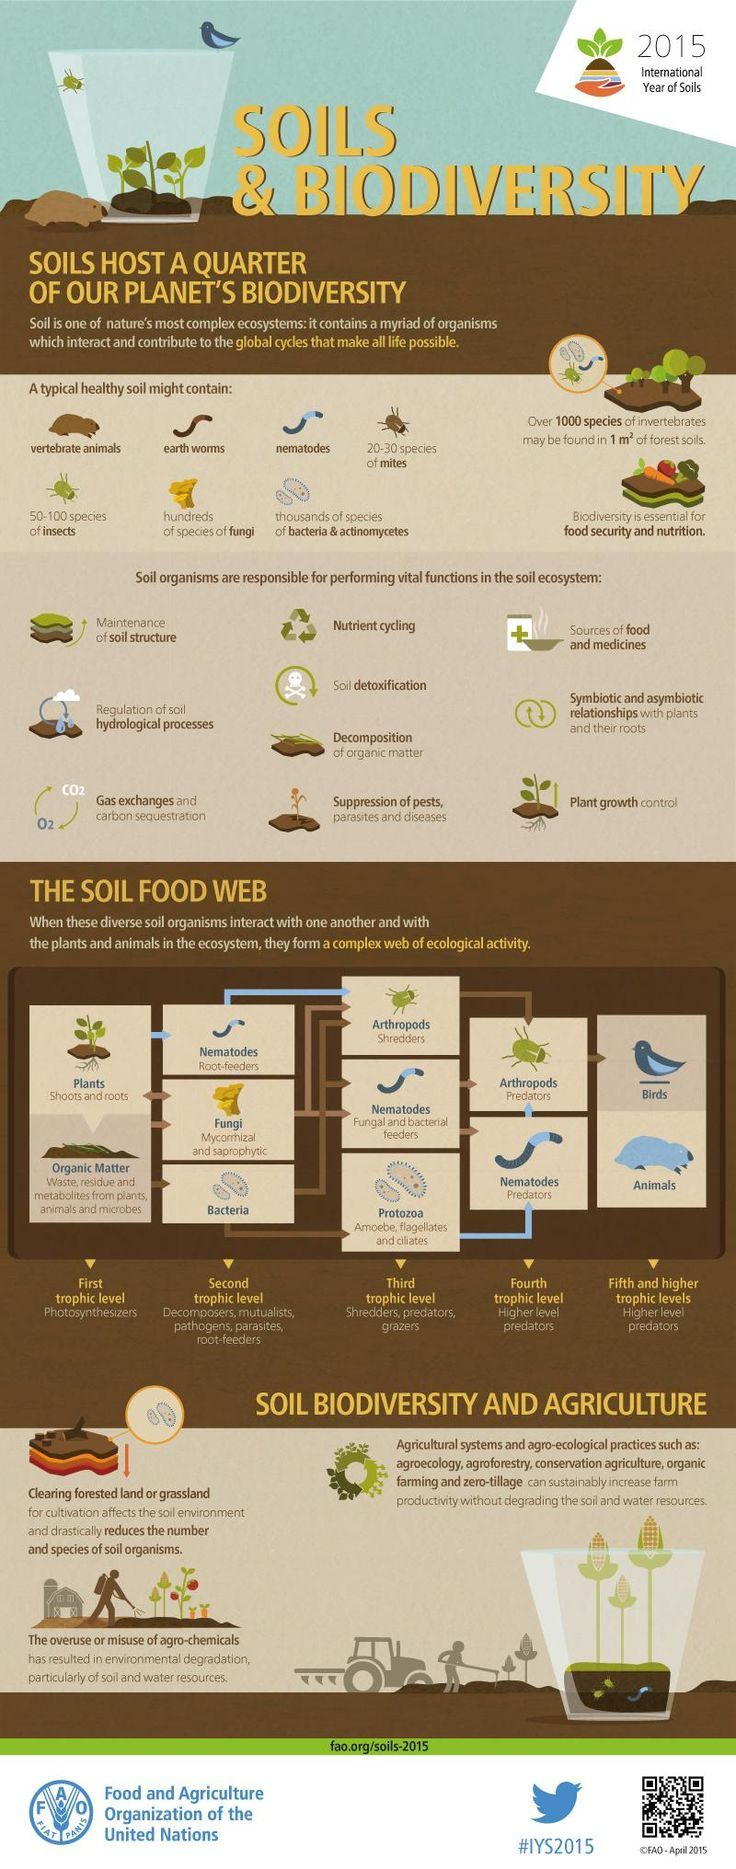 #DidYouKnow soils host 25% of our planet's #biodiversity? Explore with this infographic from @FAOnews #IYS2015